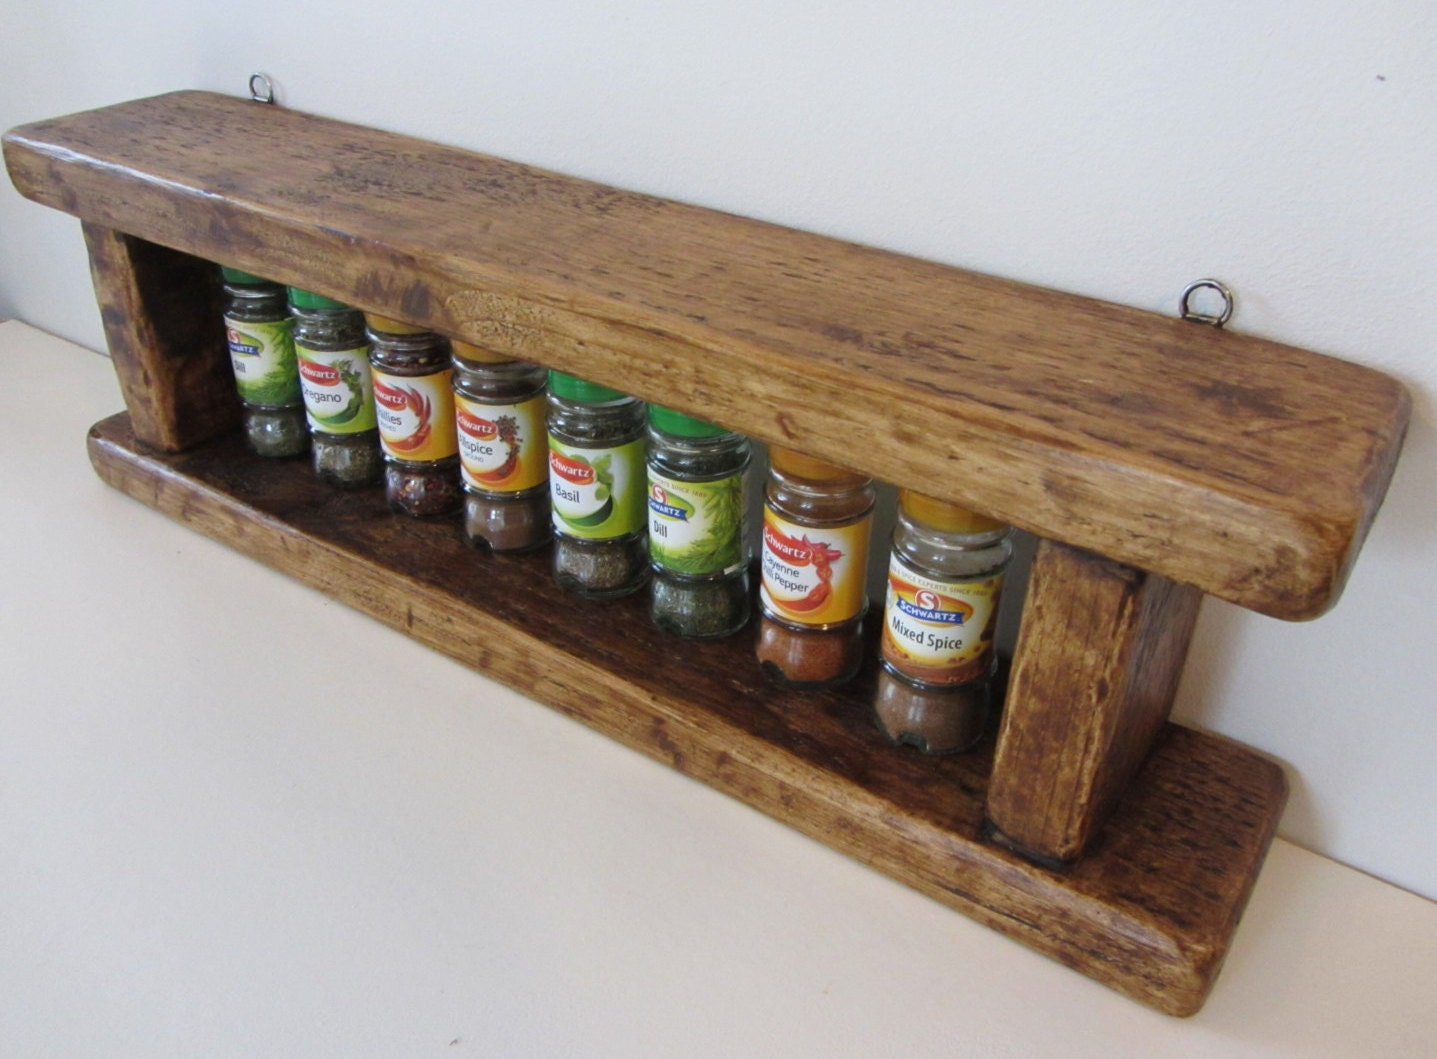 Rustic Reclaimed Plank Wood Spice Rack In Antique Brown